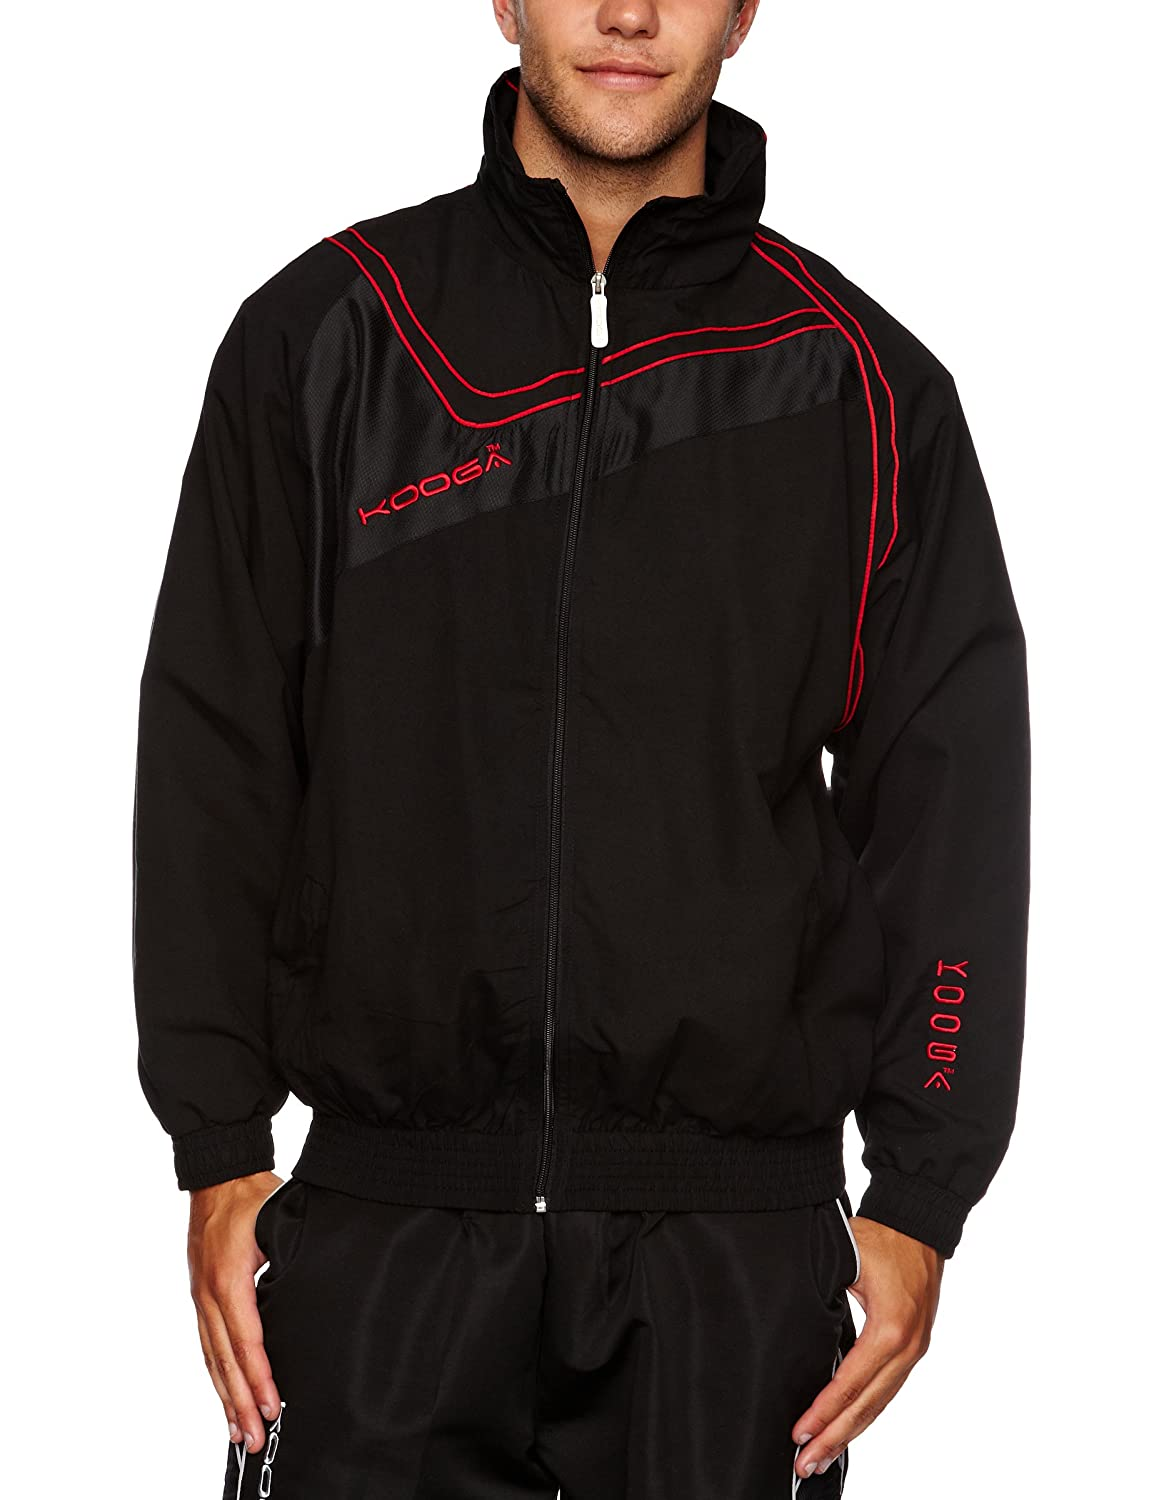 Kooga Rugby Herren Track Jacke und Mantel Set unknown